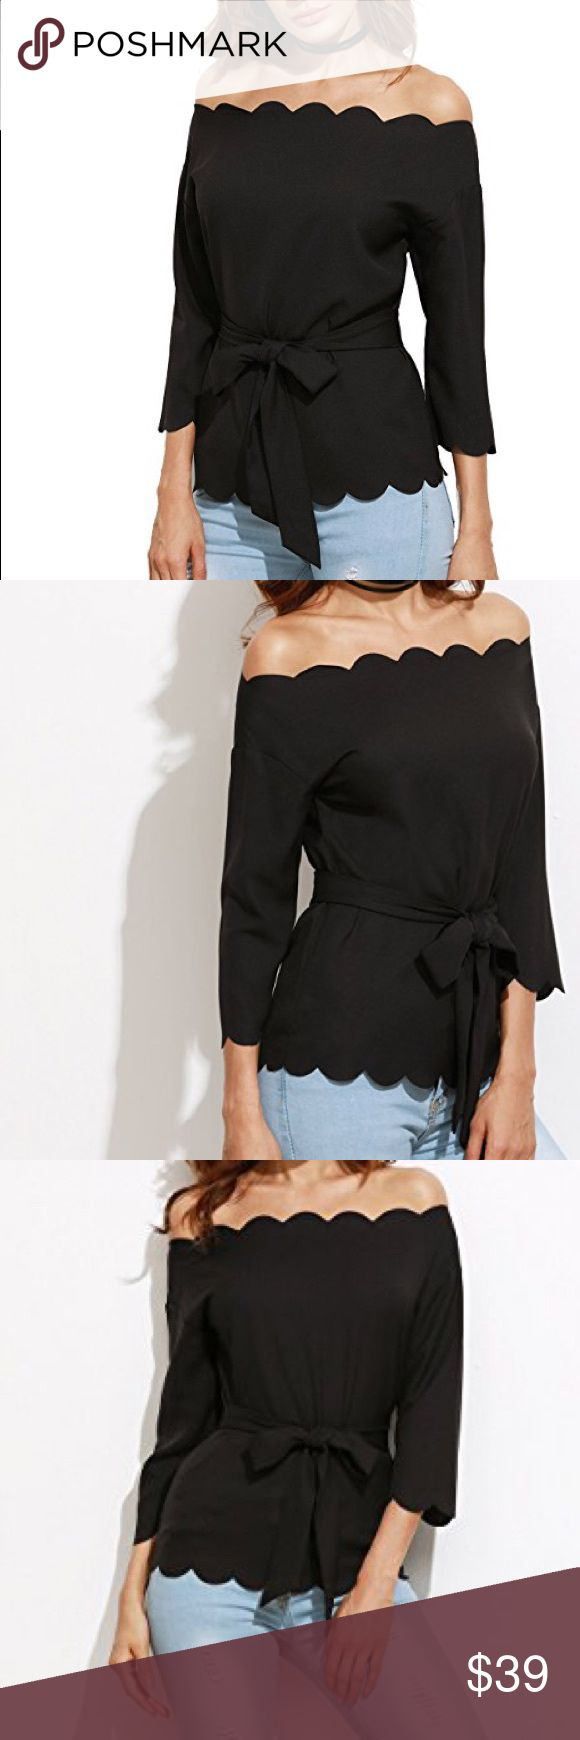 Scalloped cold shoulder top Brand new with tags black cold shoulder scalloped cut blouse with waist bow tie. 100% polyester. Available sizes are small, medium, and large. Runs slightly small so I recommend ordering one size up from your normal size.  POSH RULES ONLY NO PP NO TRADES NO LOWBALL OFFERS  HAPPY POSHING! boutique Tops Tunics